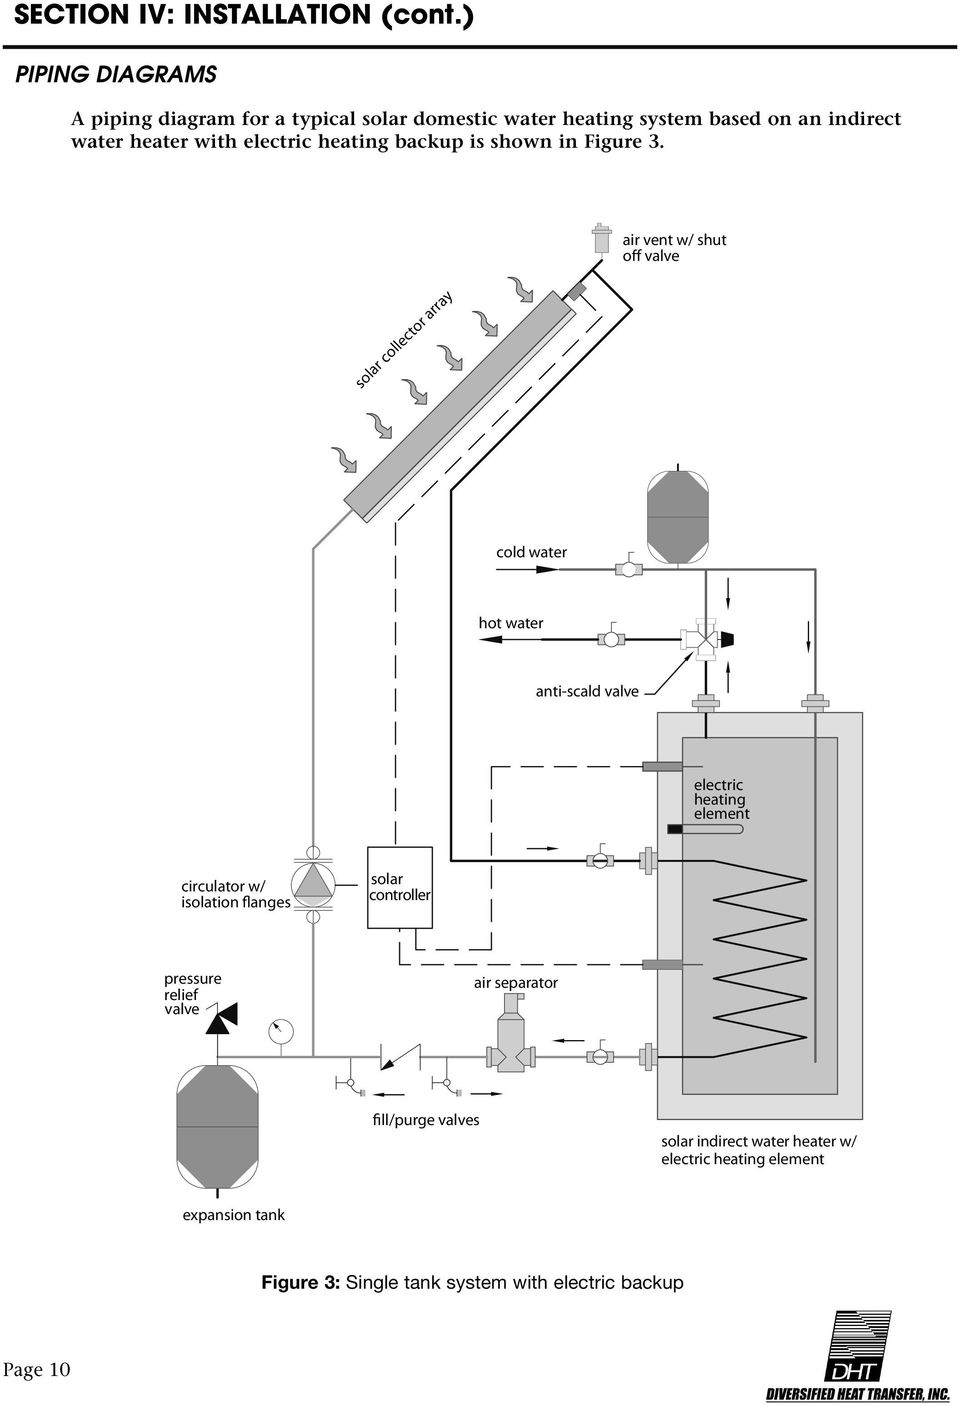 Techtanium solar indirect water heater instruction manual pdf heating backup is shown in figure 3 ccuart Image collections